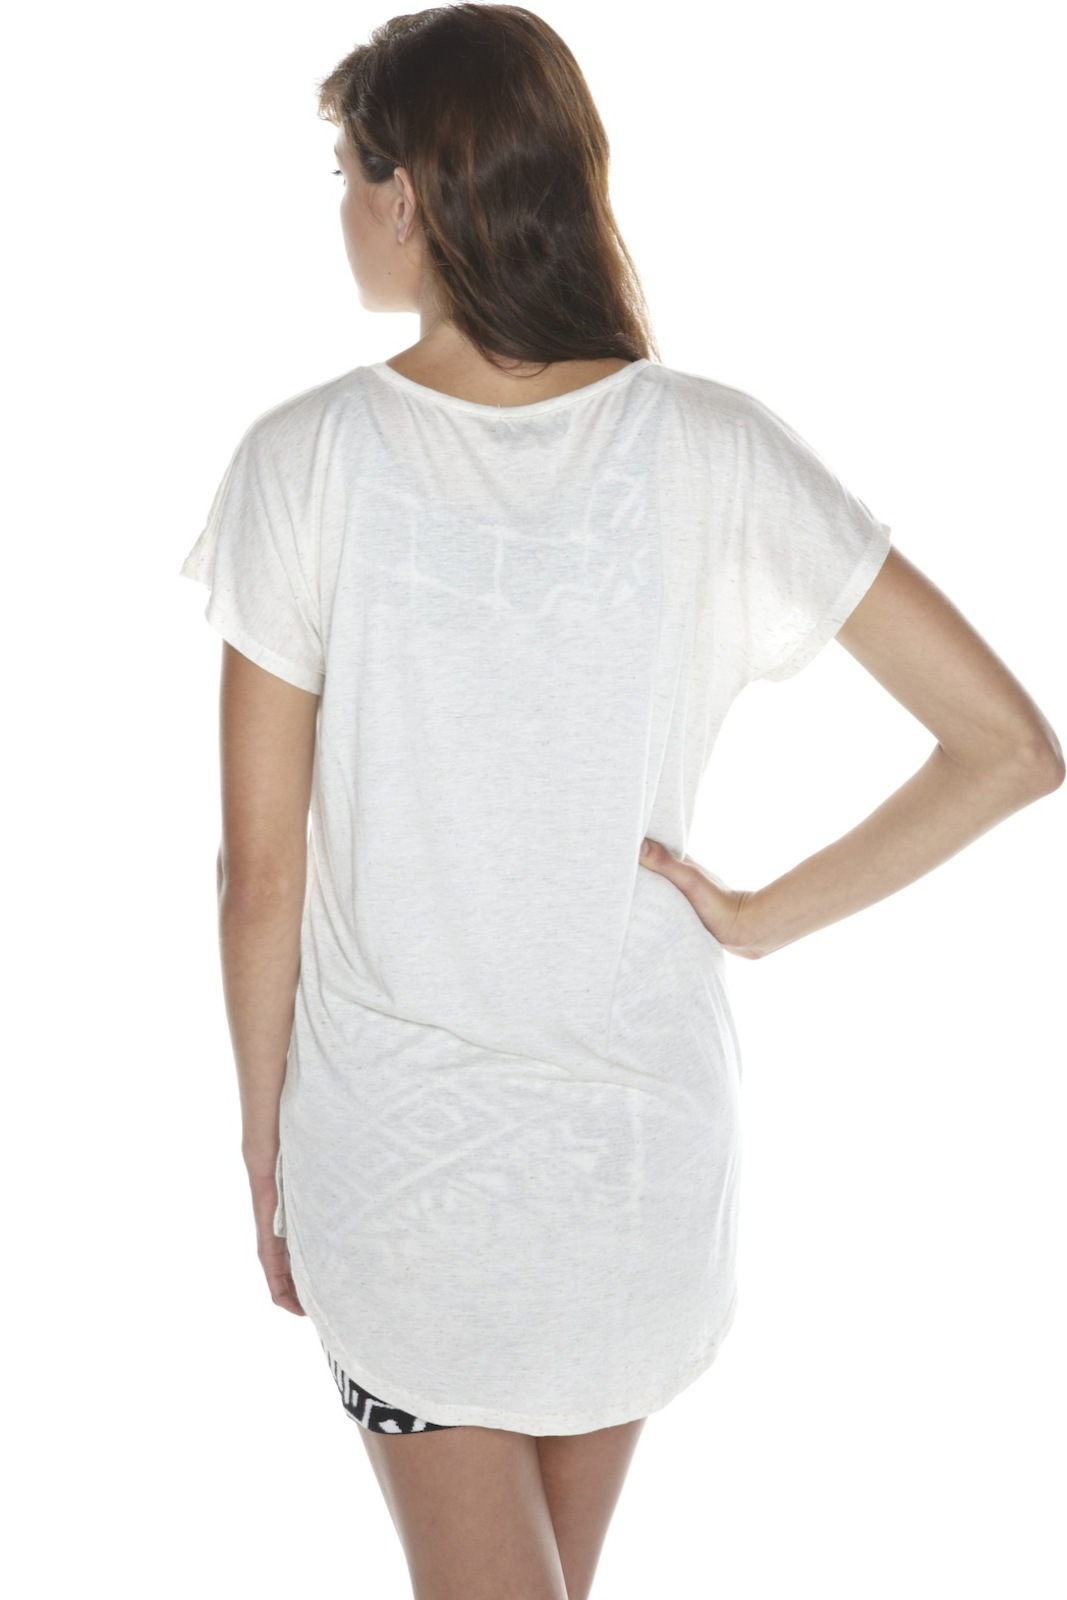 Torn by Ronny Kobo Skull Tee - Back Cropped Image